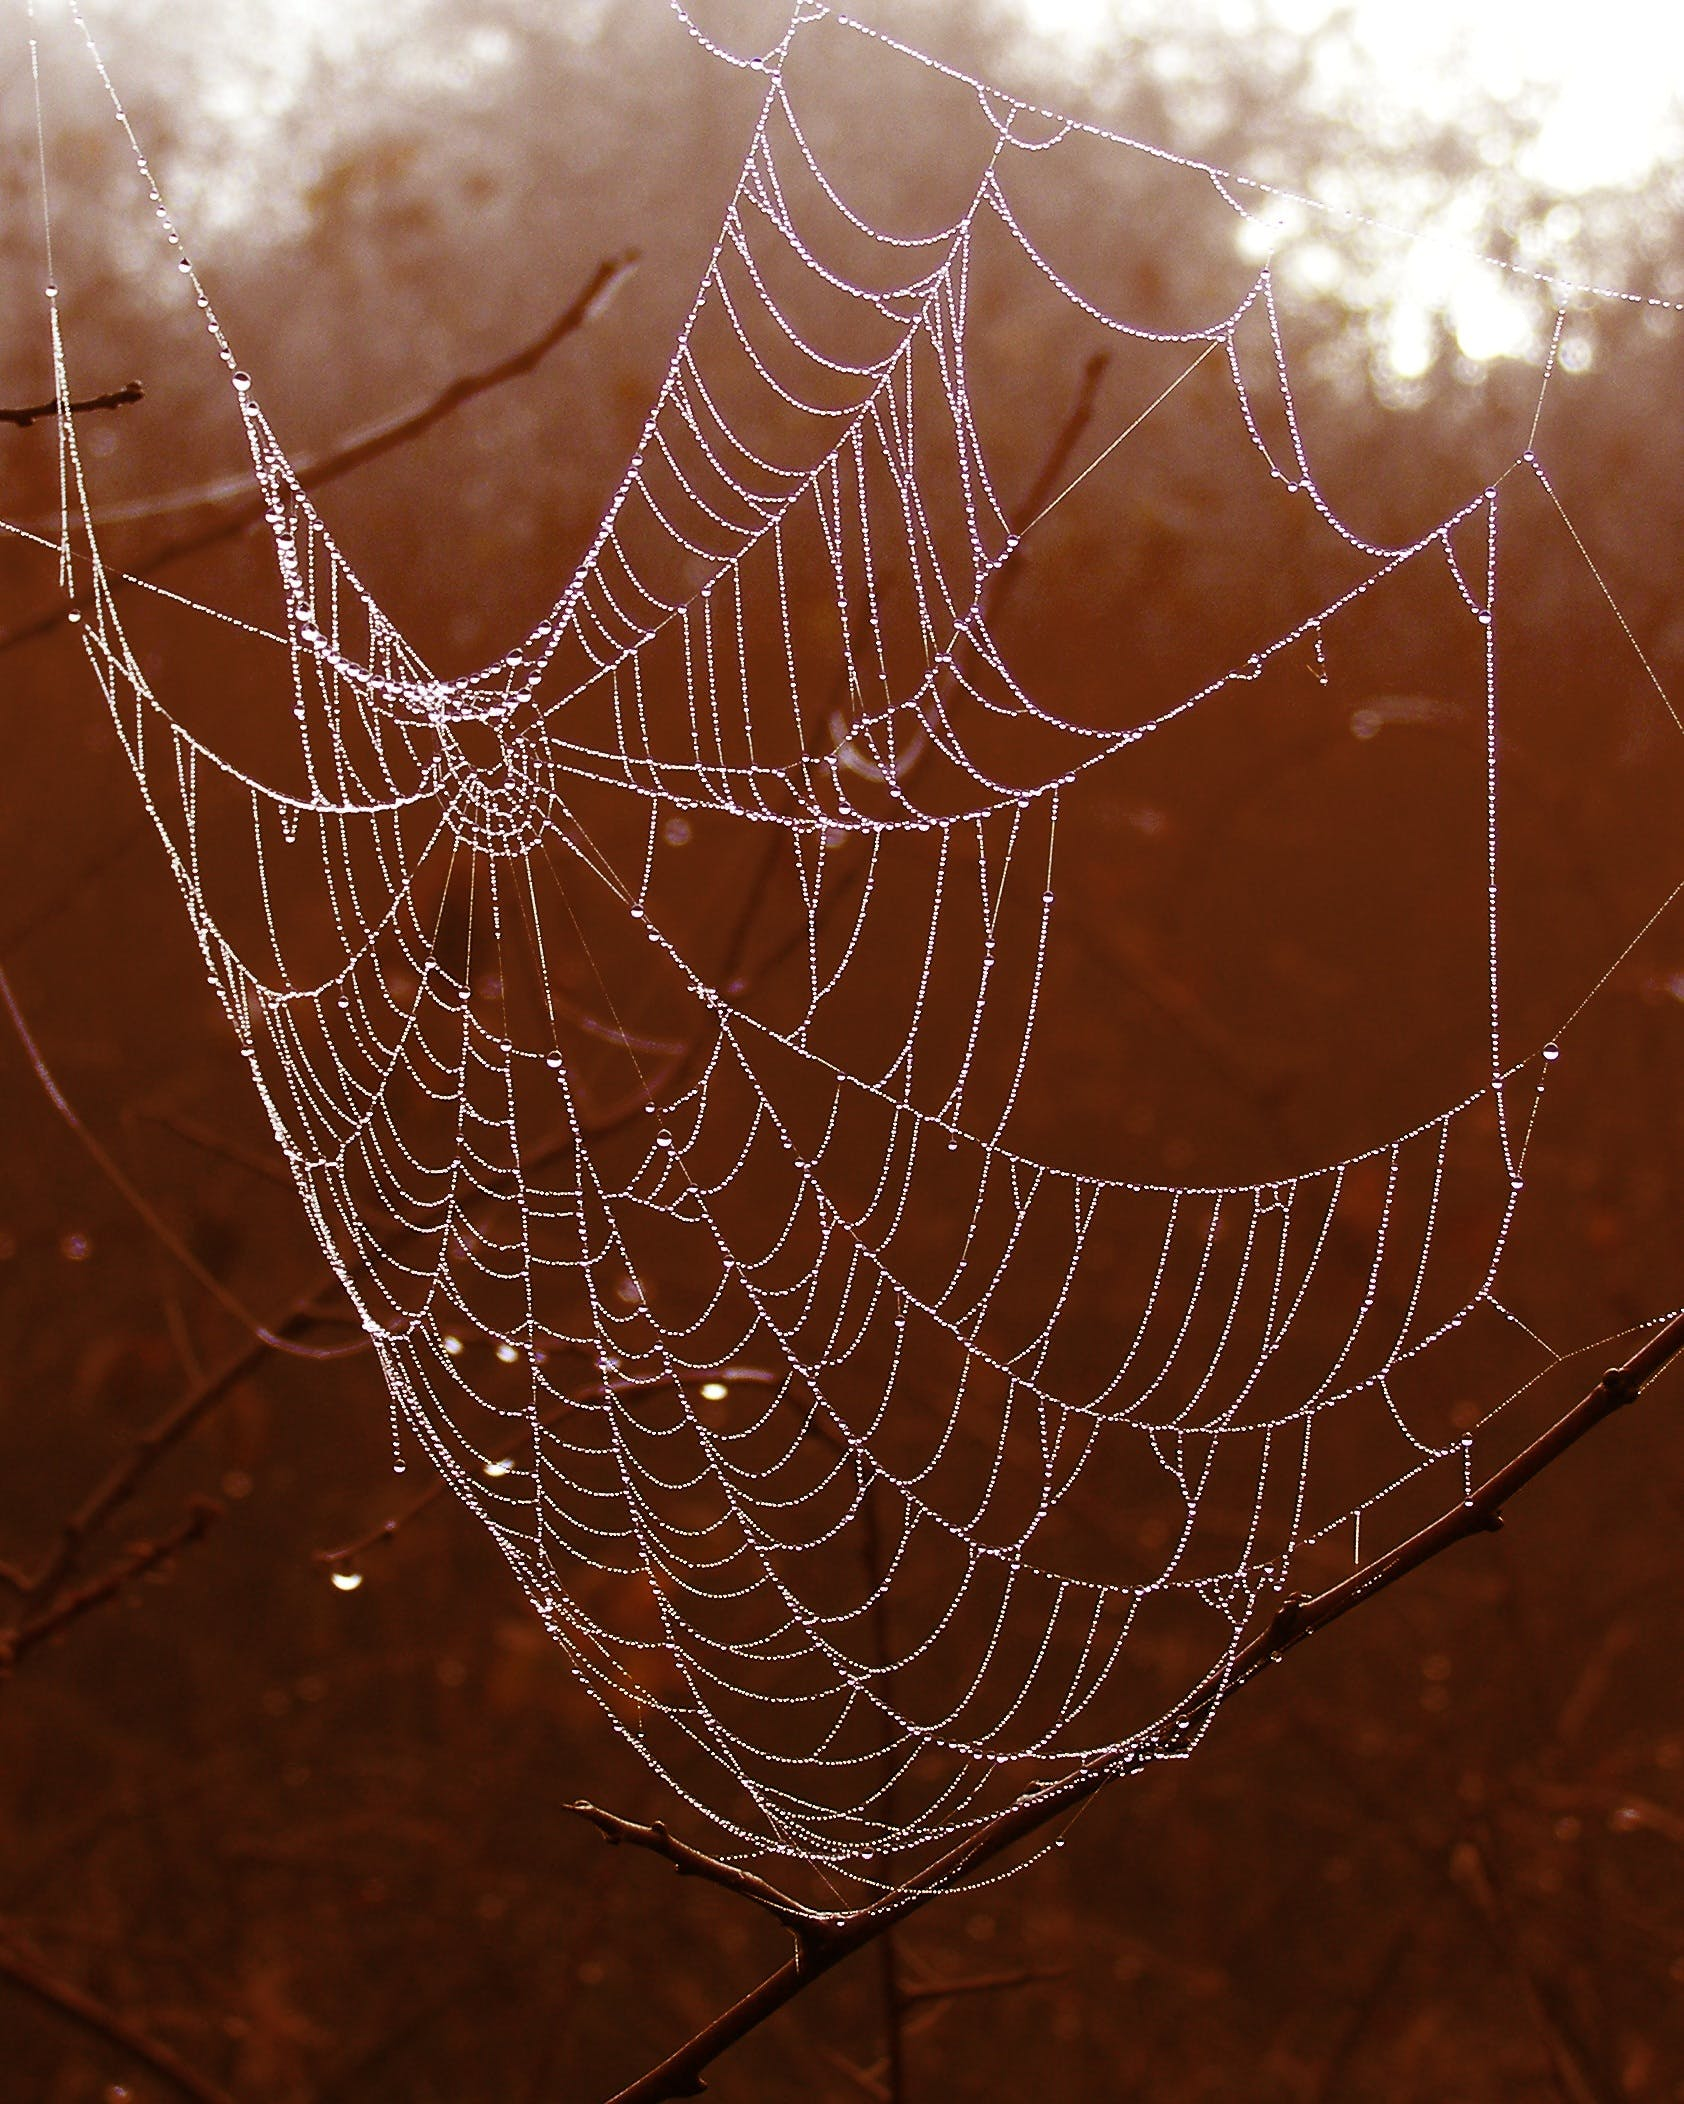 Selective Photography of Spider Web